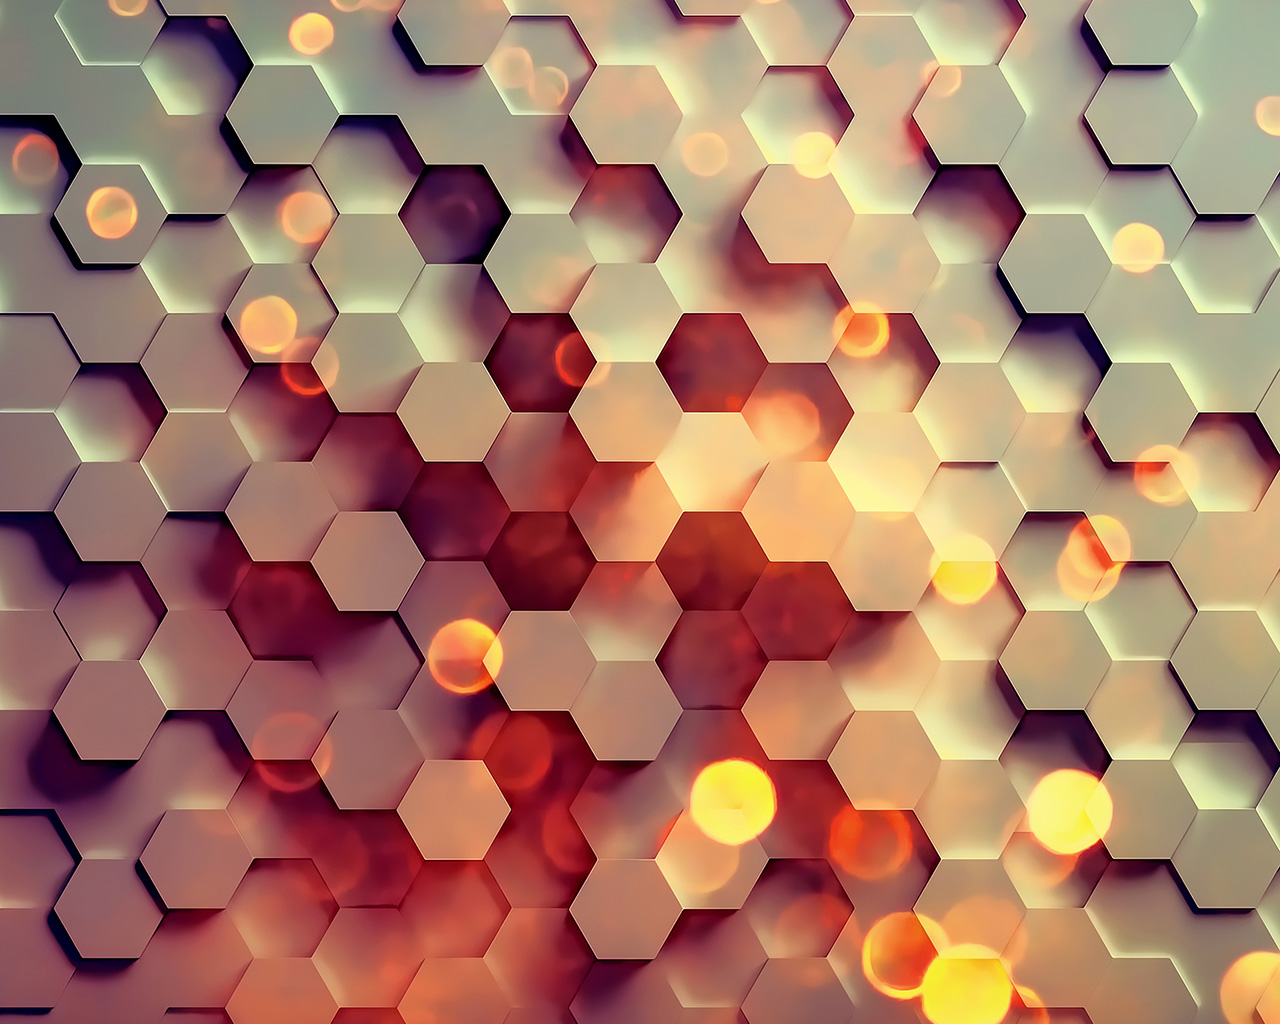 Cute Iphone Wallpapers Fall Vy40 Honey Hexagon Digital Abstract Pattern Background